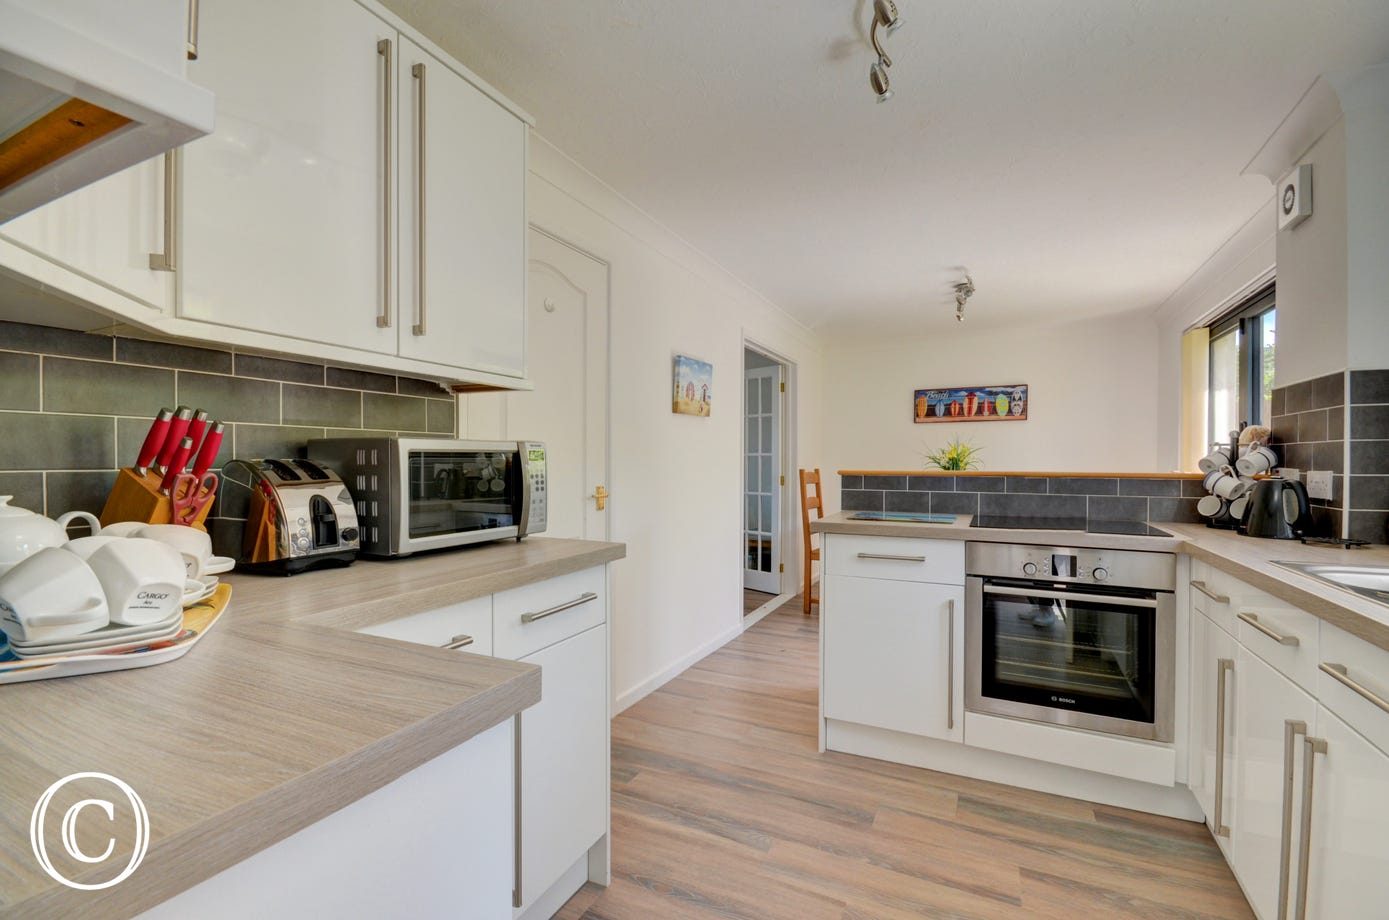 The kitchen/Breakfast Room is modern and bright and benefits from a useful utility room